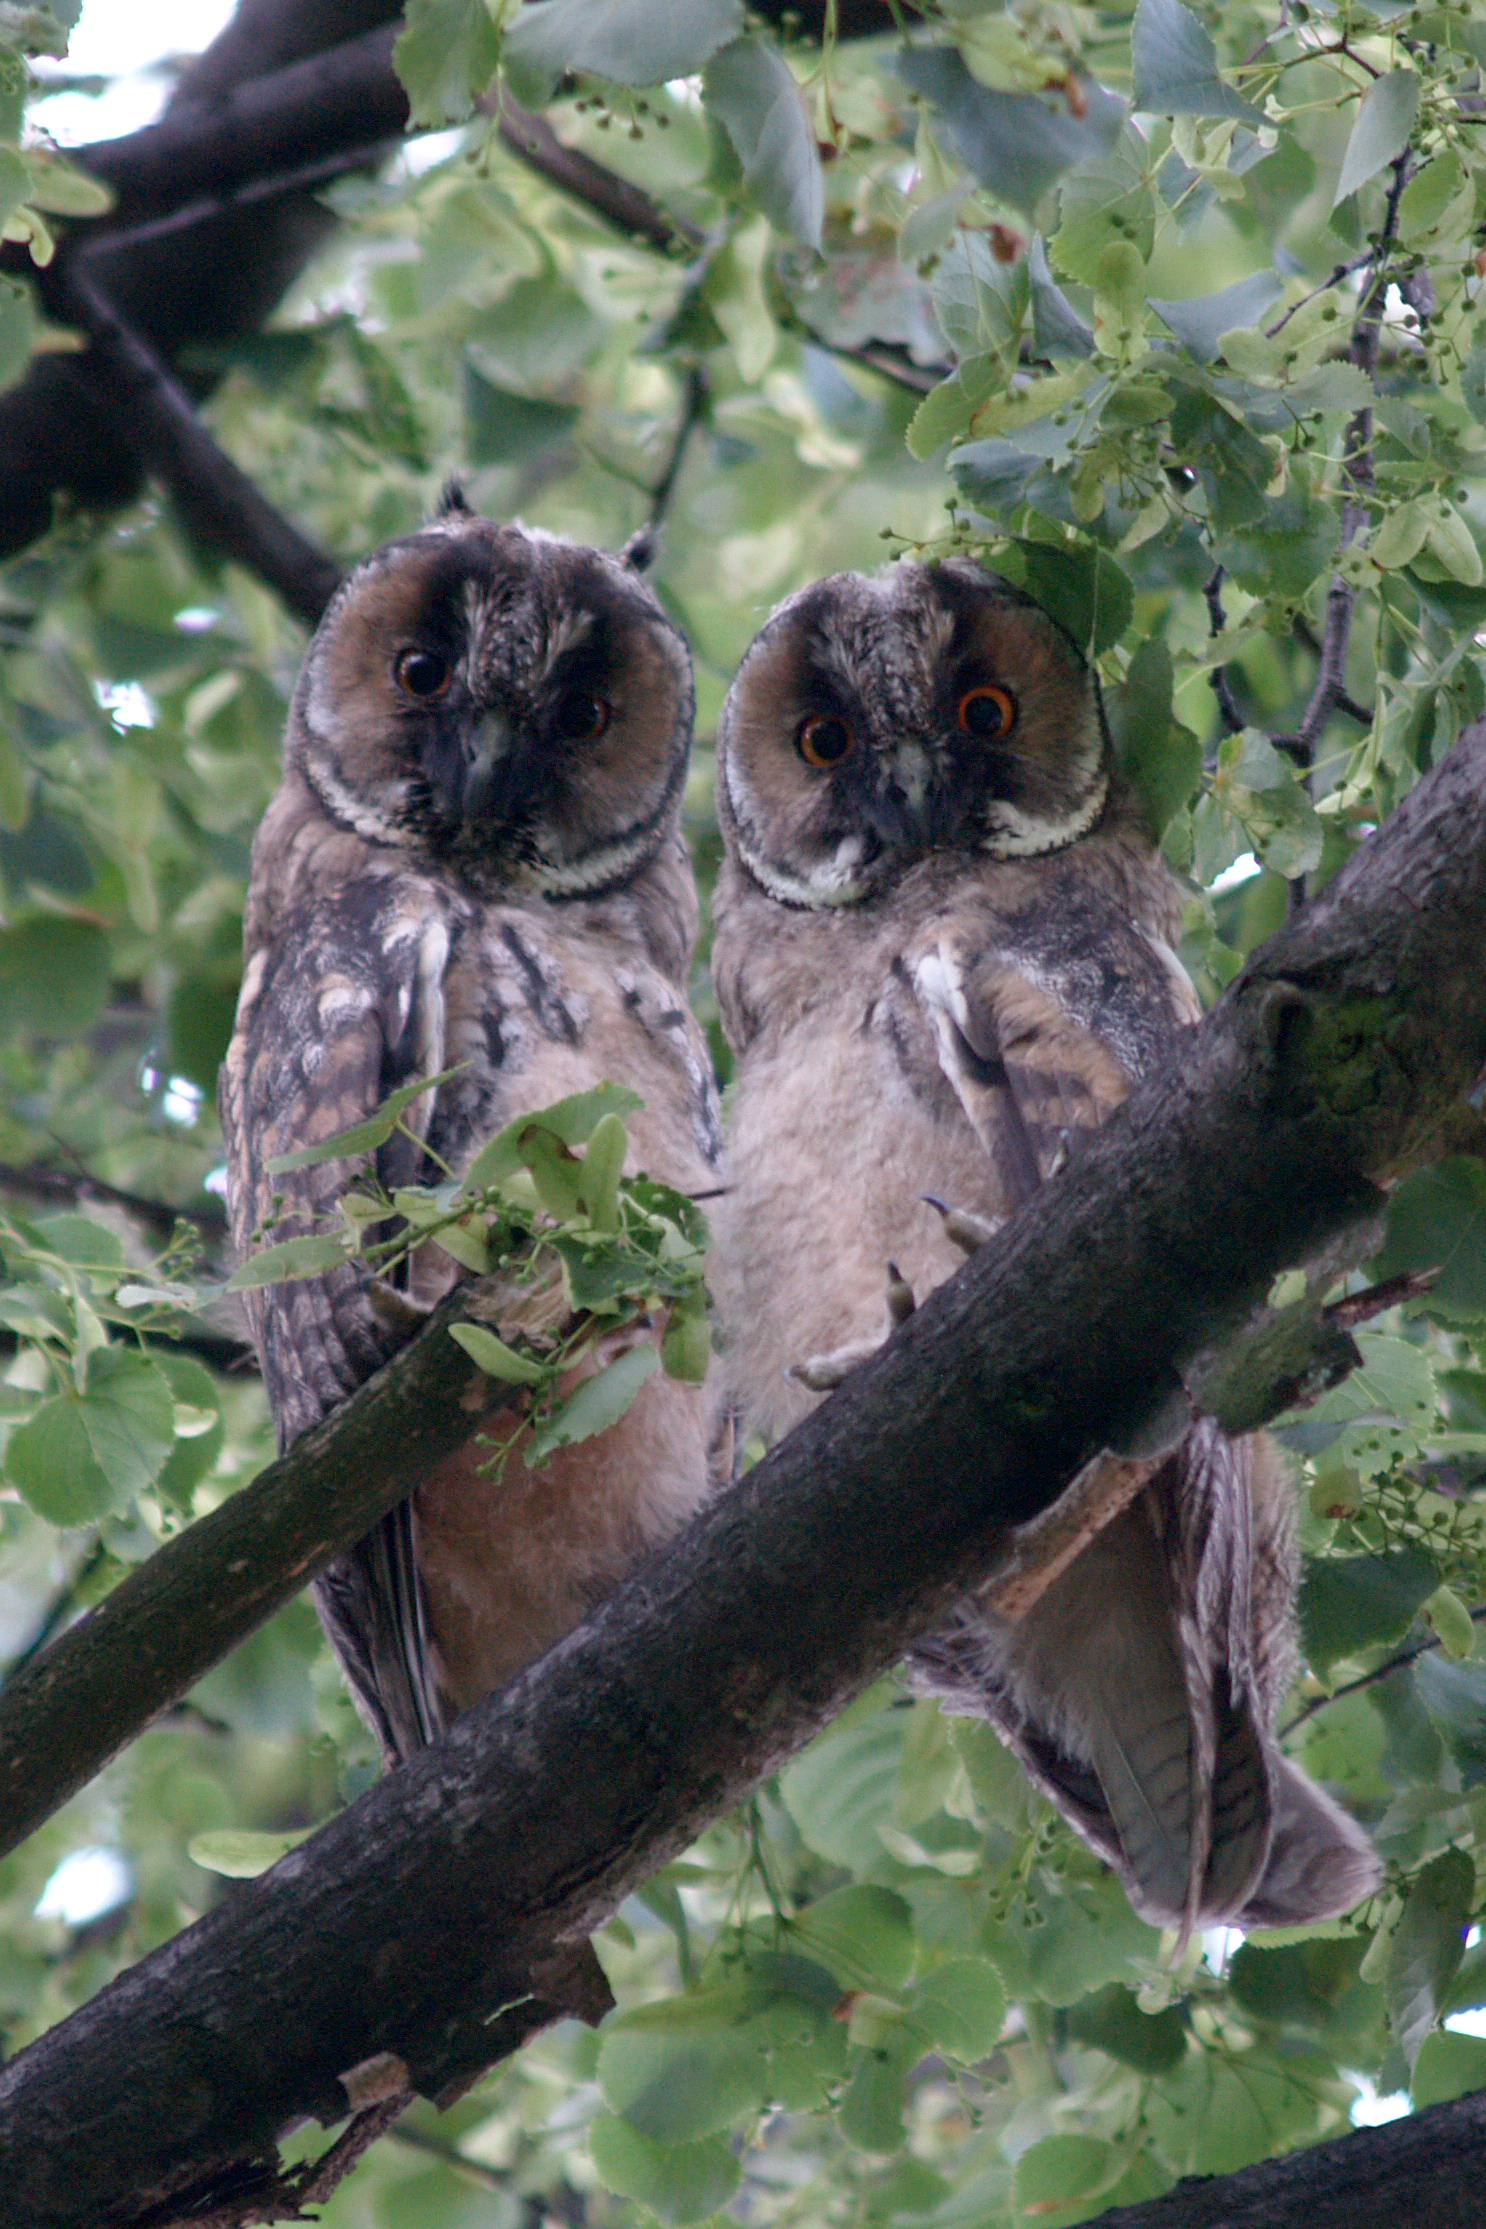 Two young owls in a tree